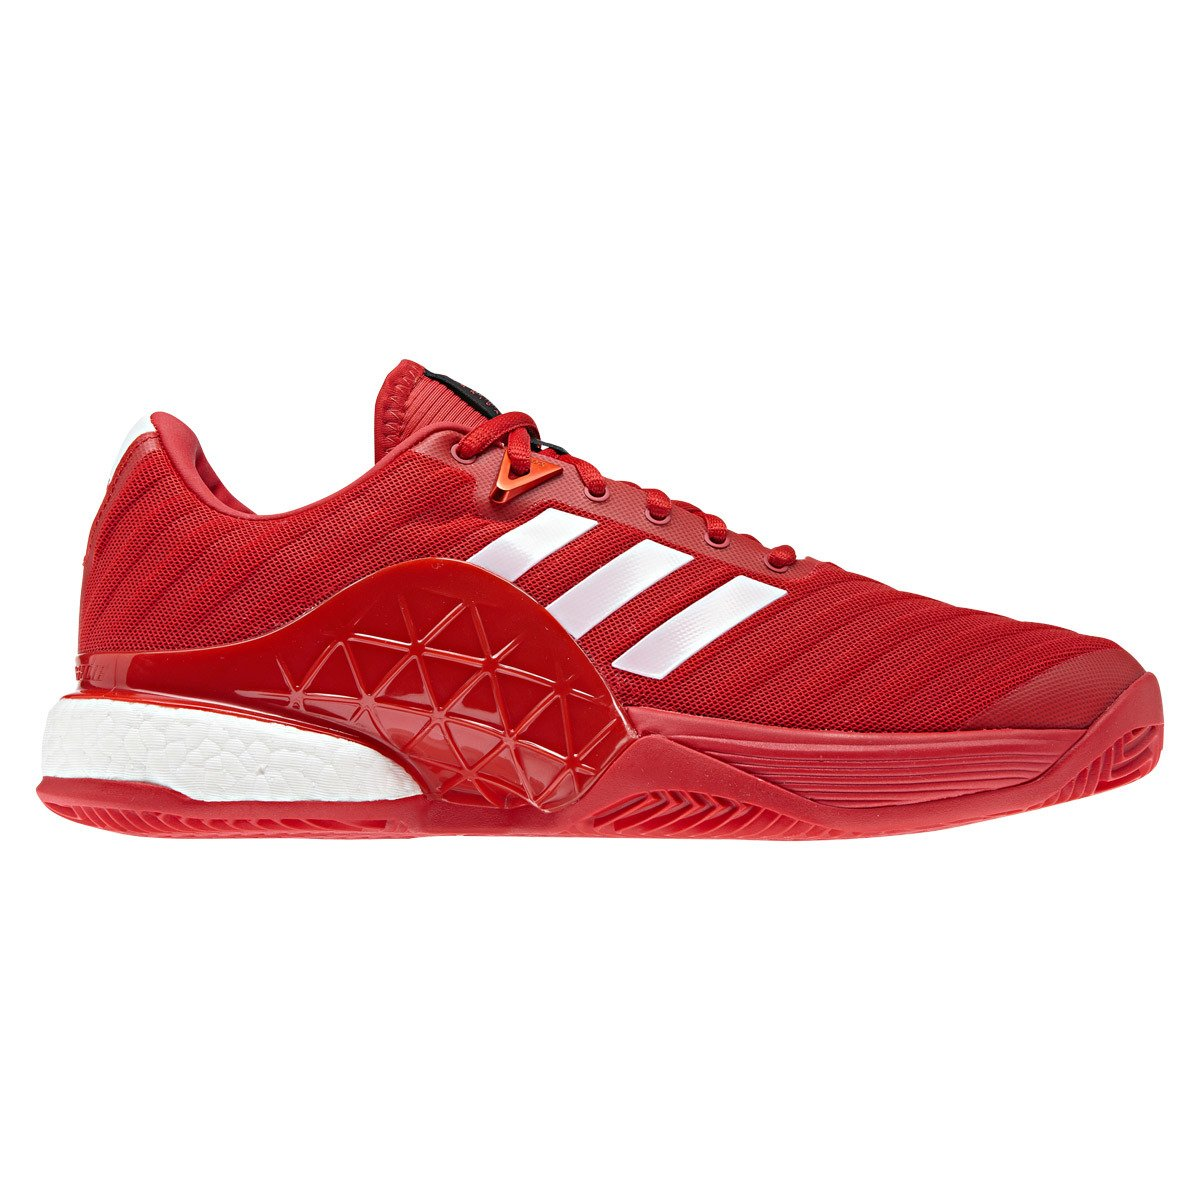 adidas Barricade Boost Rojo Clay DB1747: Amazon.es: Deportes ...